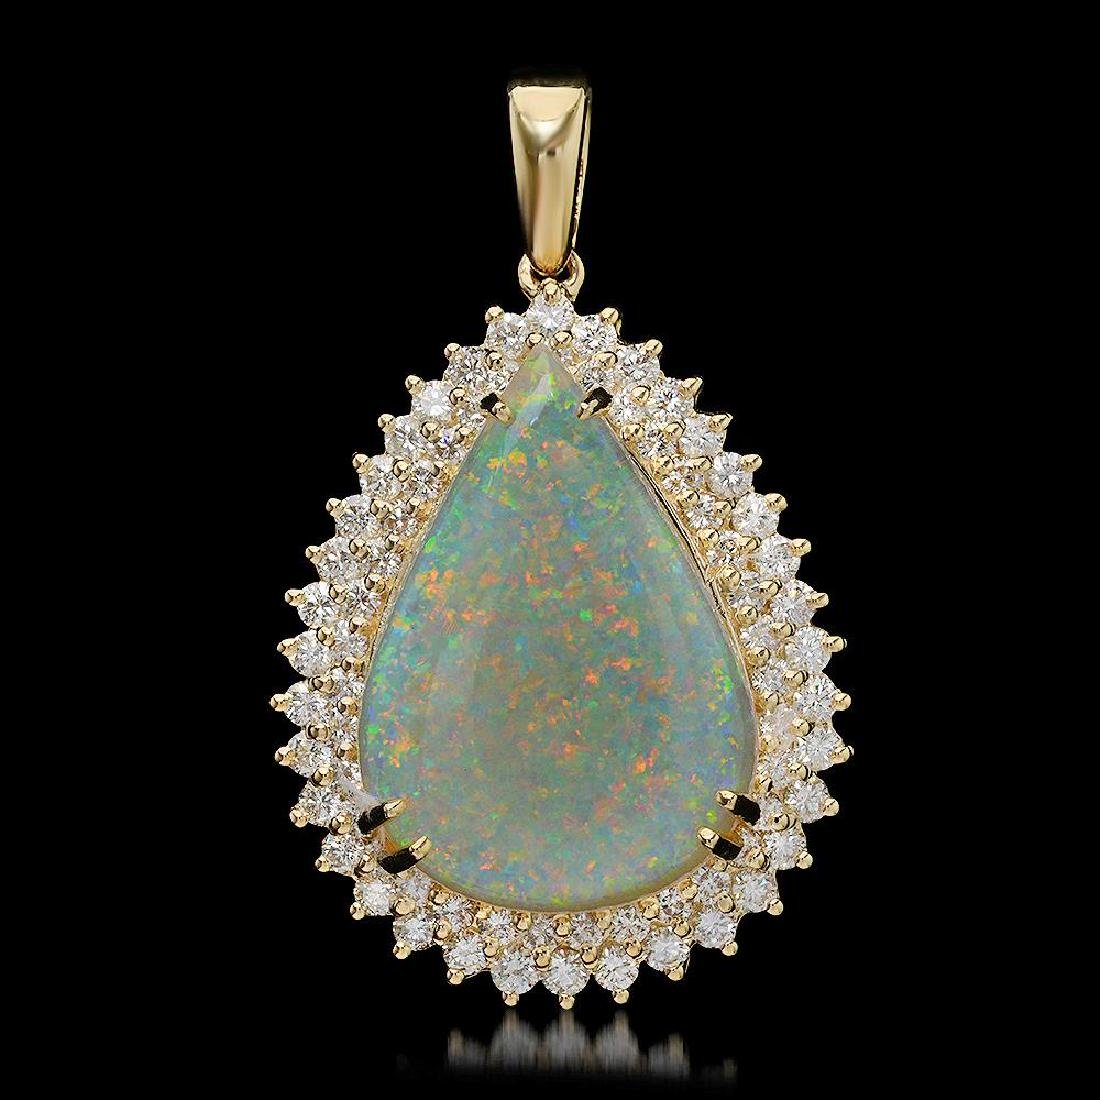 14K Gold 11.86ct Opal 2.35ct Diamond Pendant